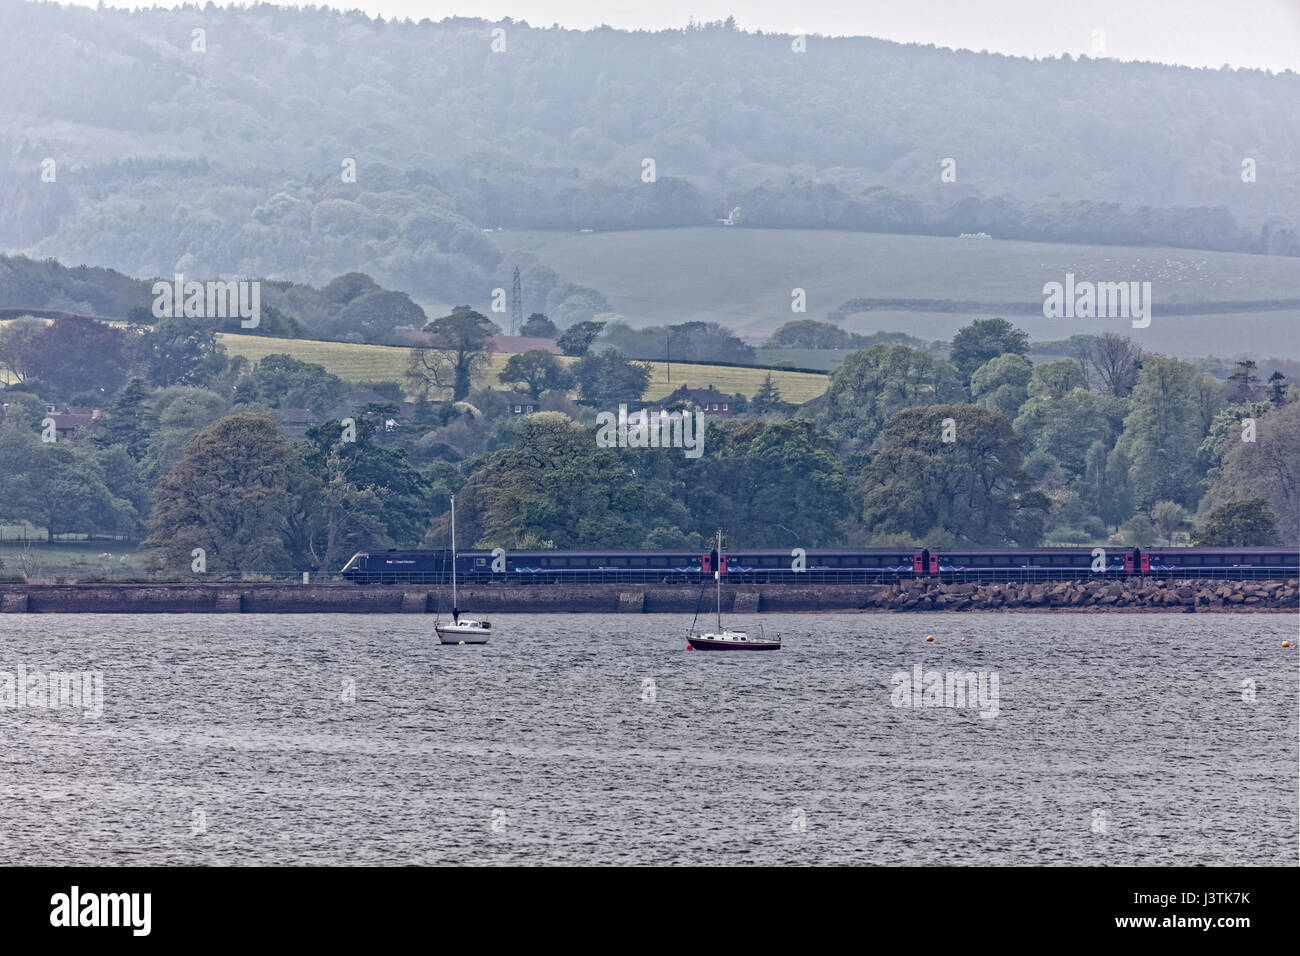 First Great Western intercity train on the Riviera Line adjacent to the River Exe - moving right to left. - Stock Image